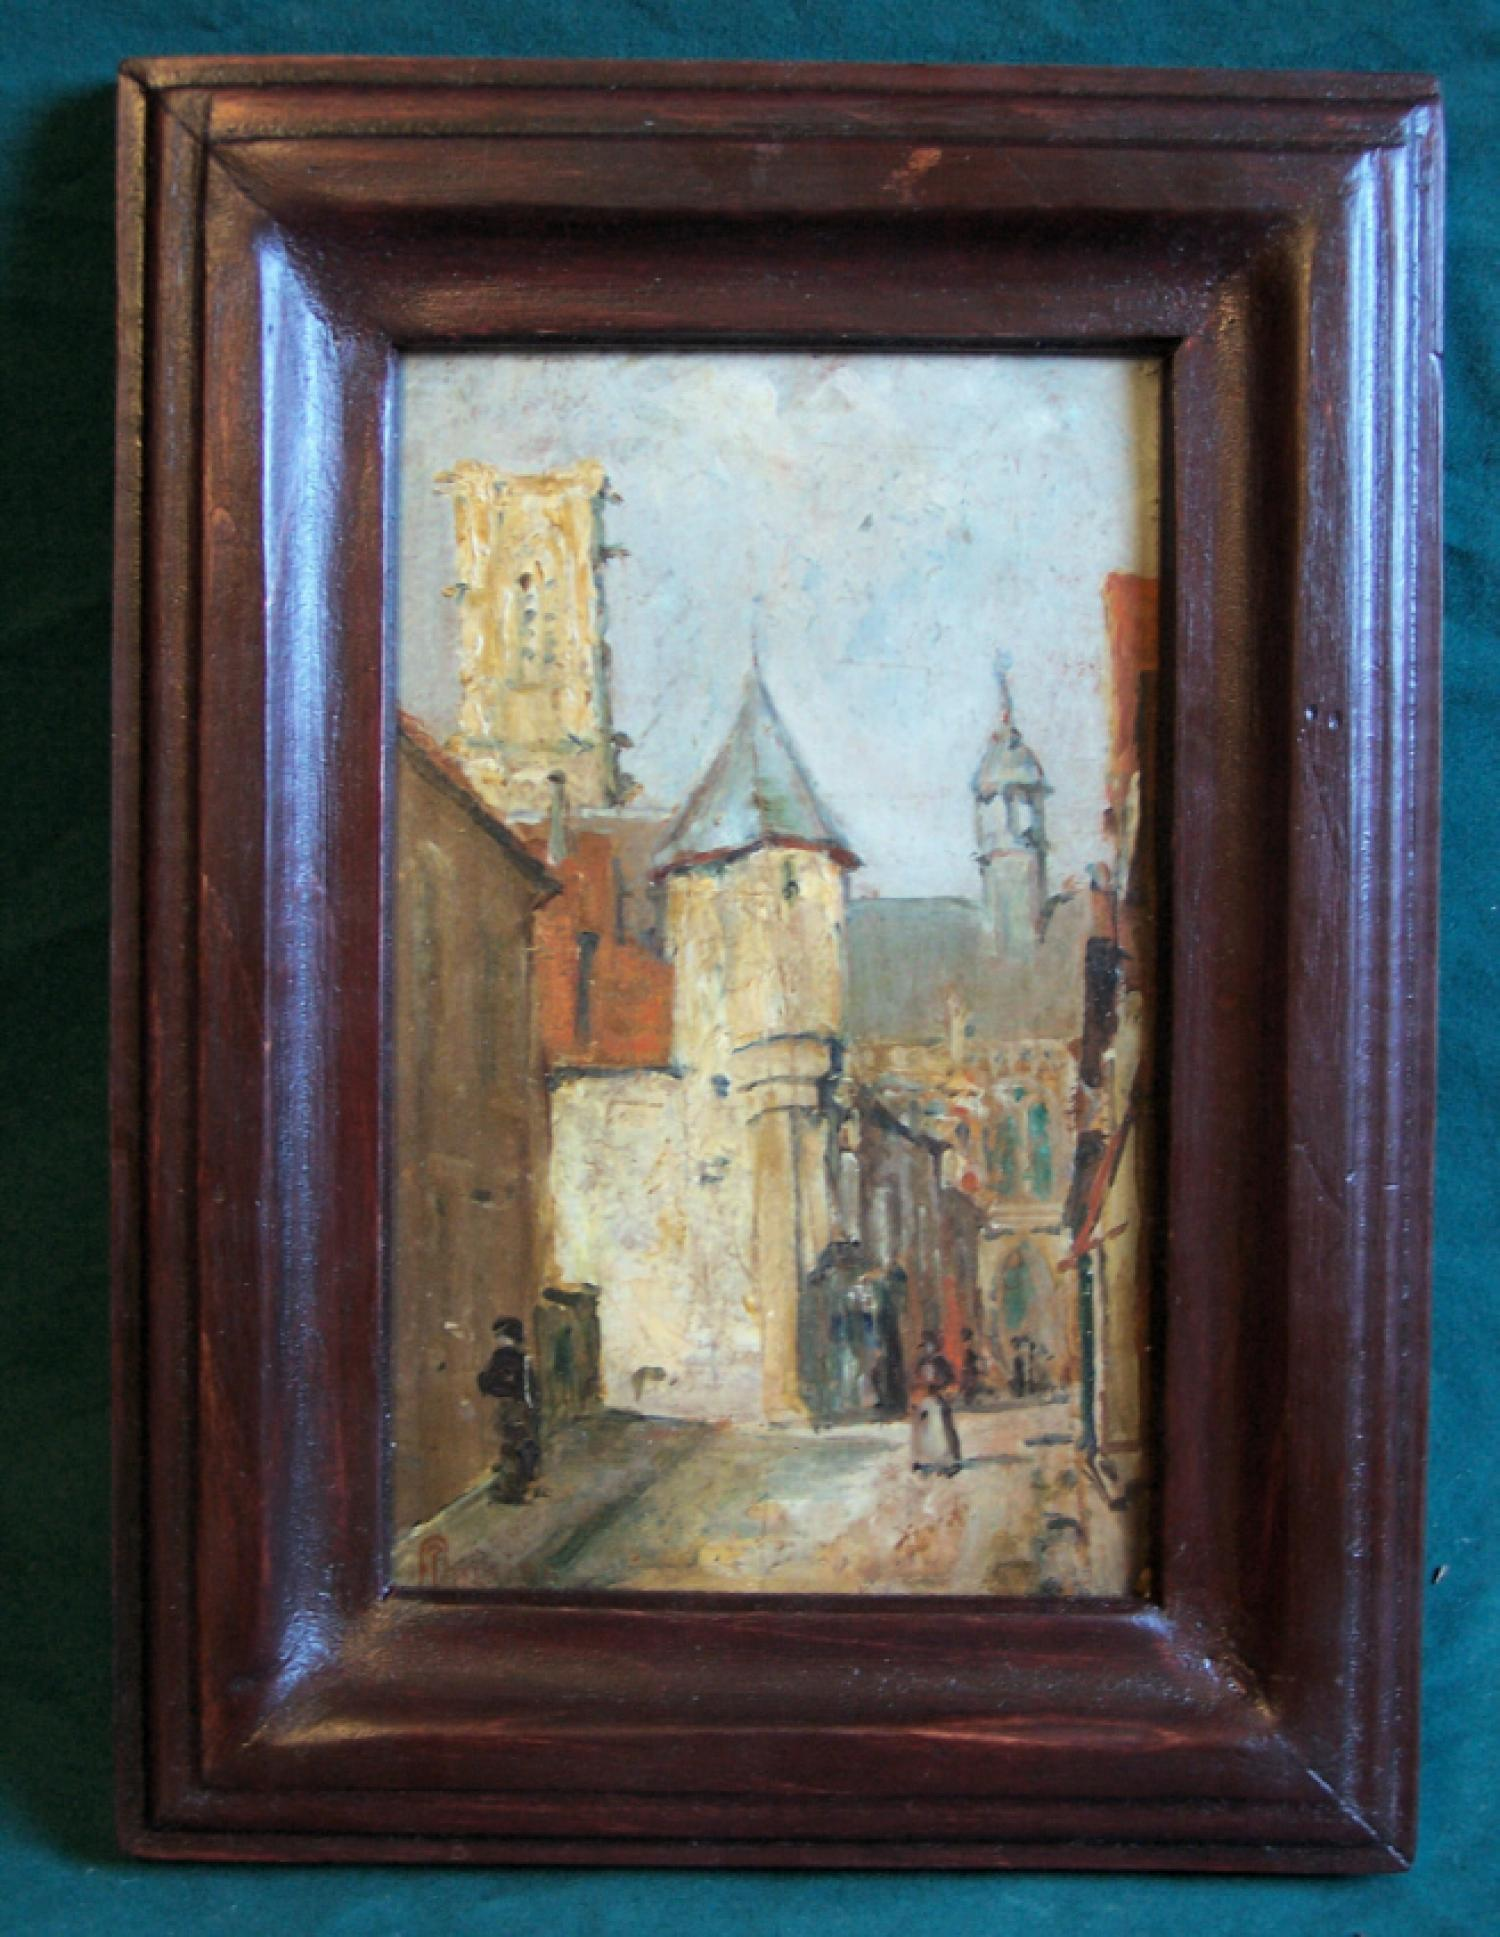 19th century European oil painting of village street signed Maguire